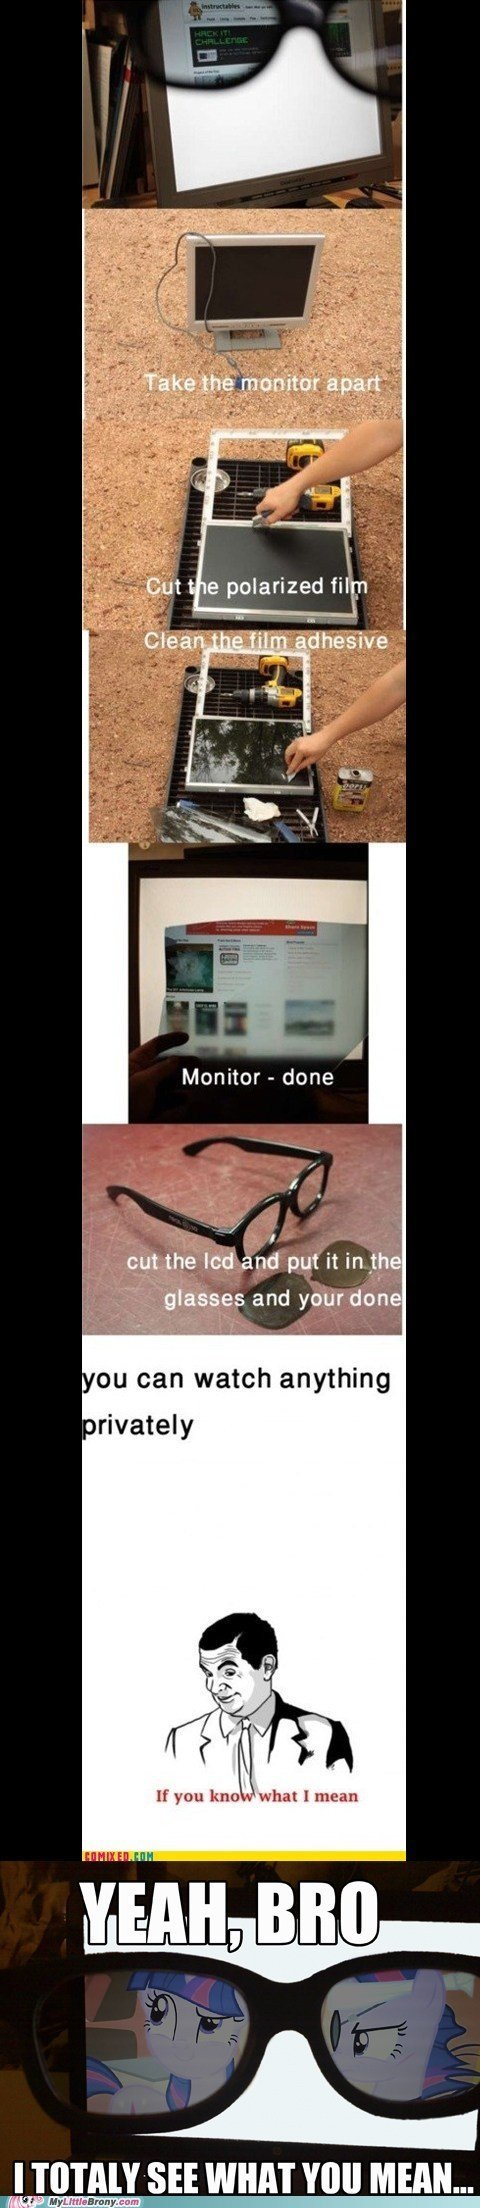 """privacy. . polarized film Monitor ... done am the led and put it in we glasses and your done g DU can watch anything If you kn-: 1 what I mean icij"""" jeti,, BRO,"""